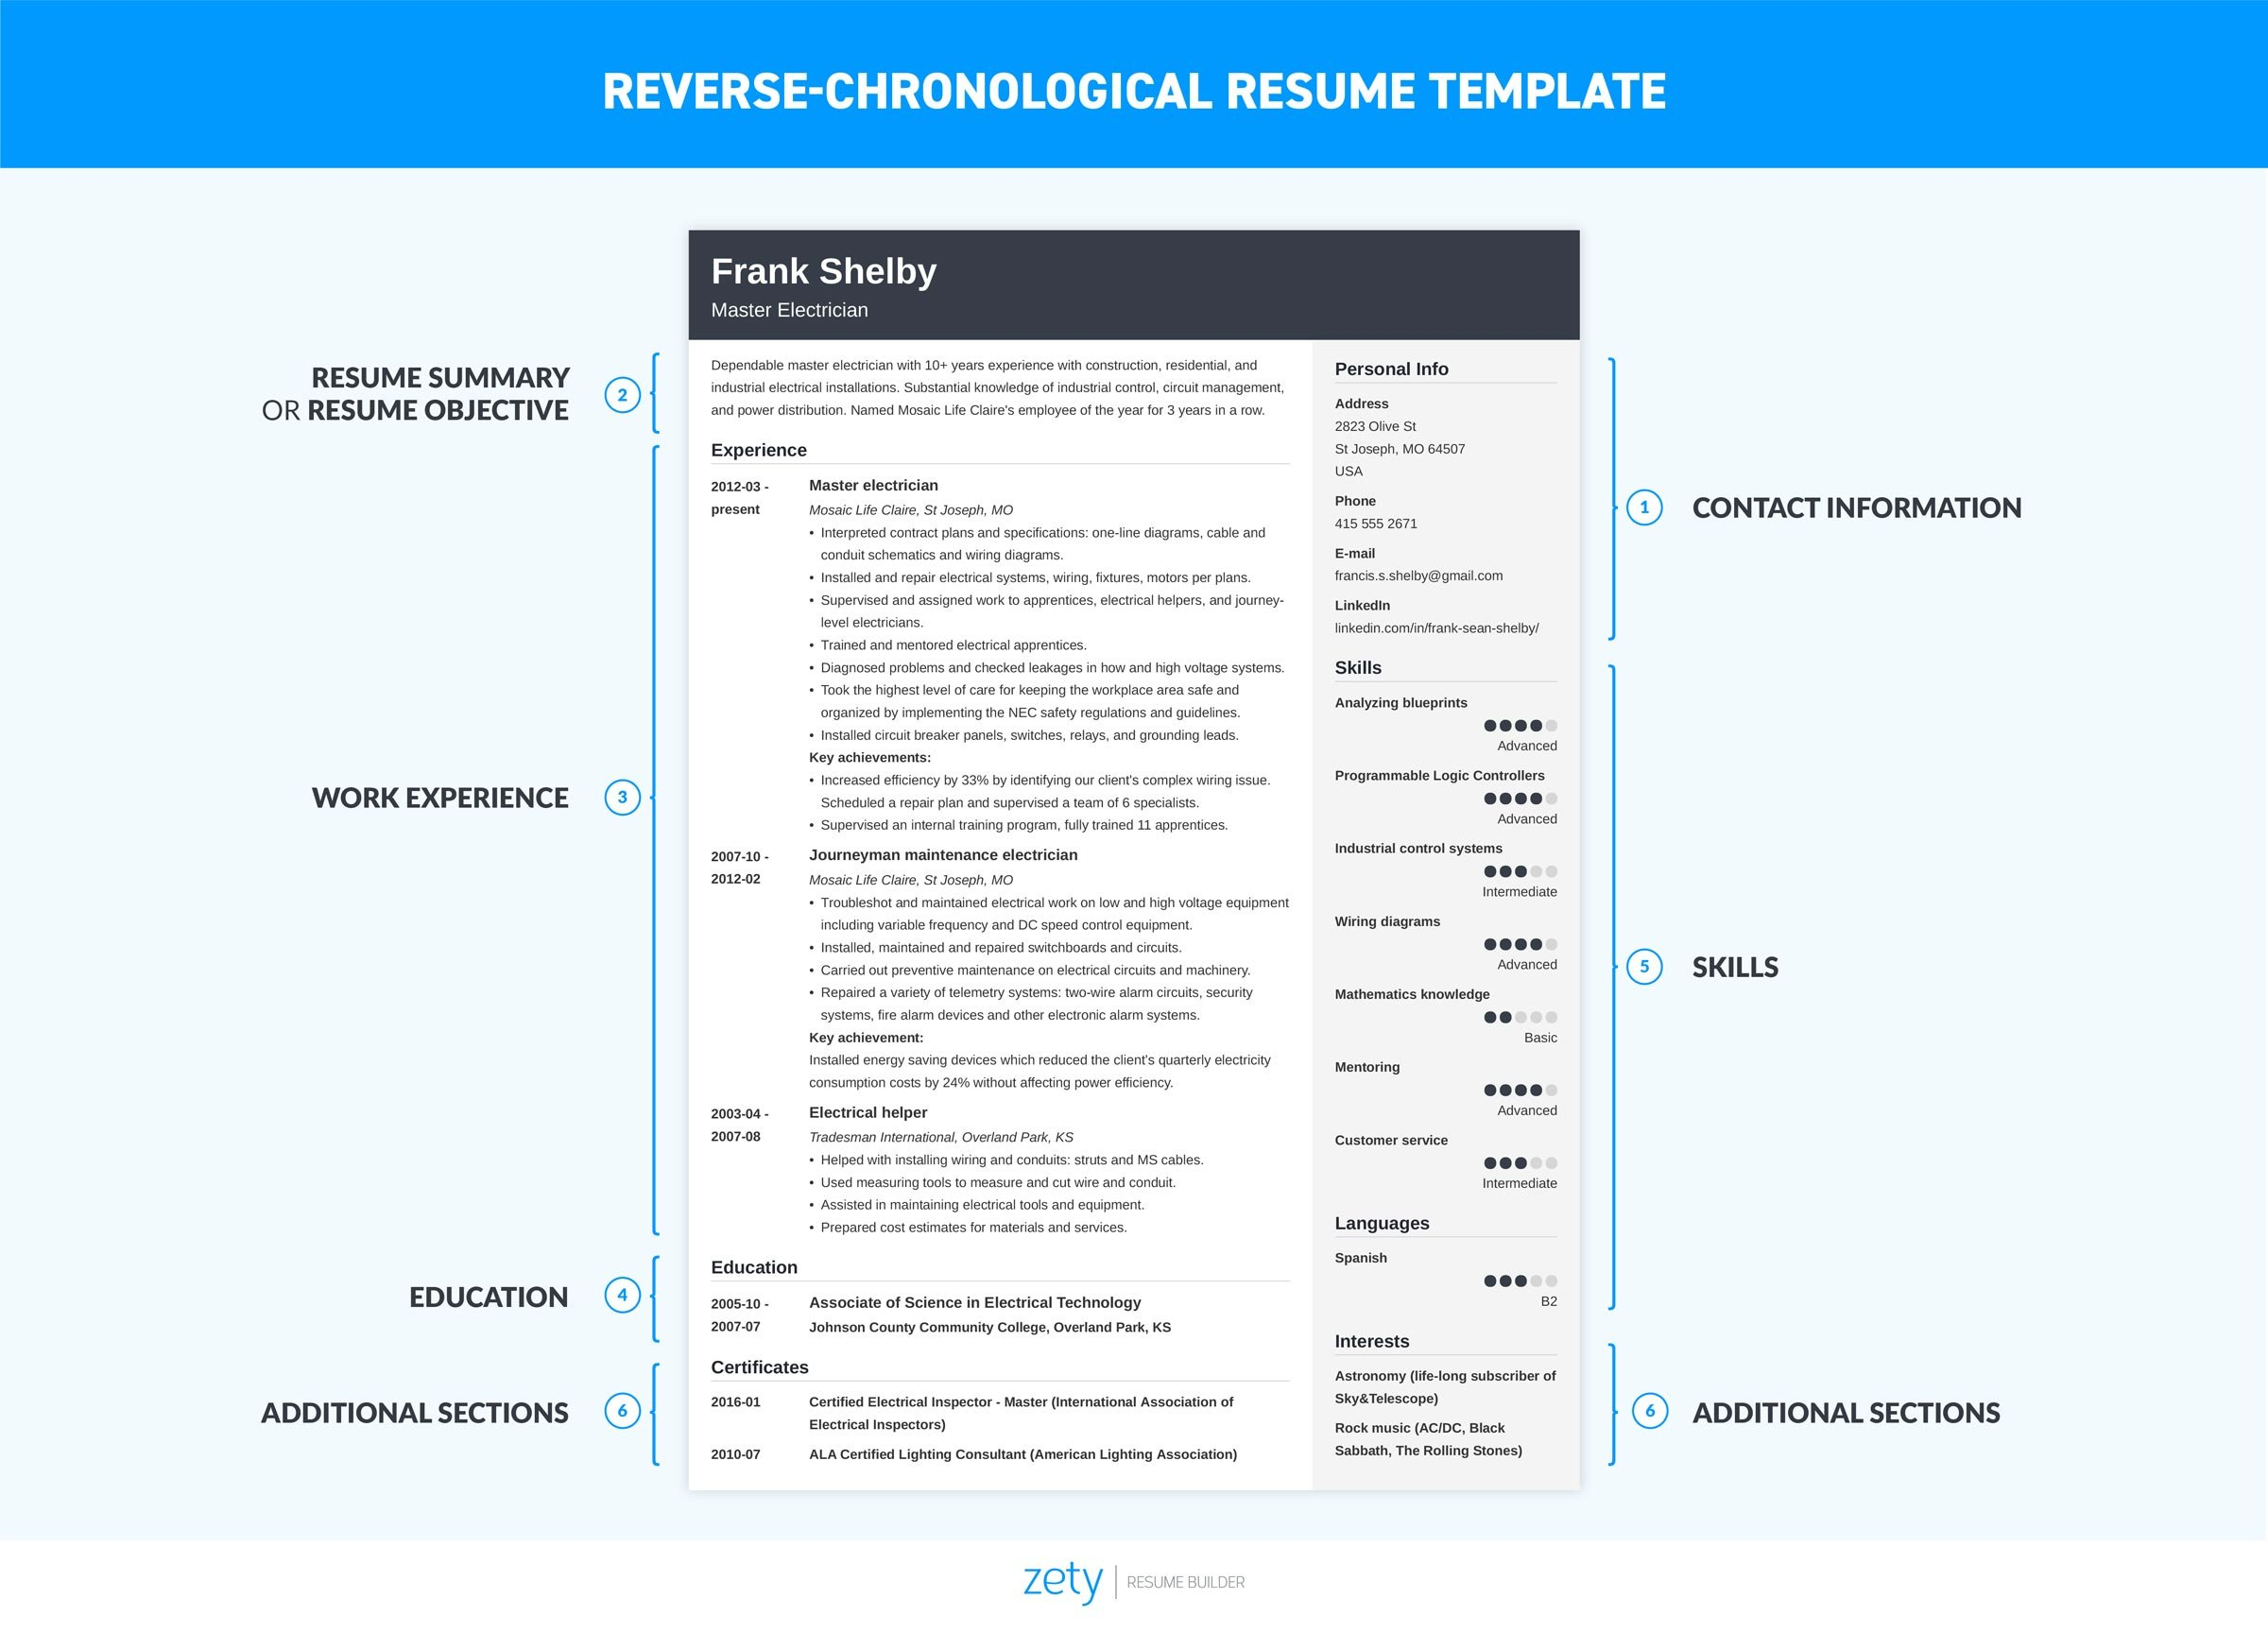 How To Write A Chronological Resume Infographic  How To Write A Chronological Resume